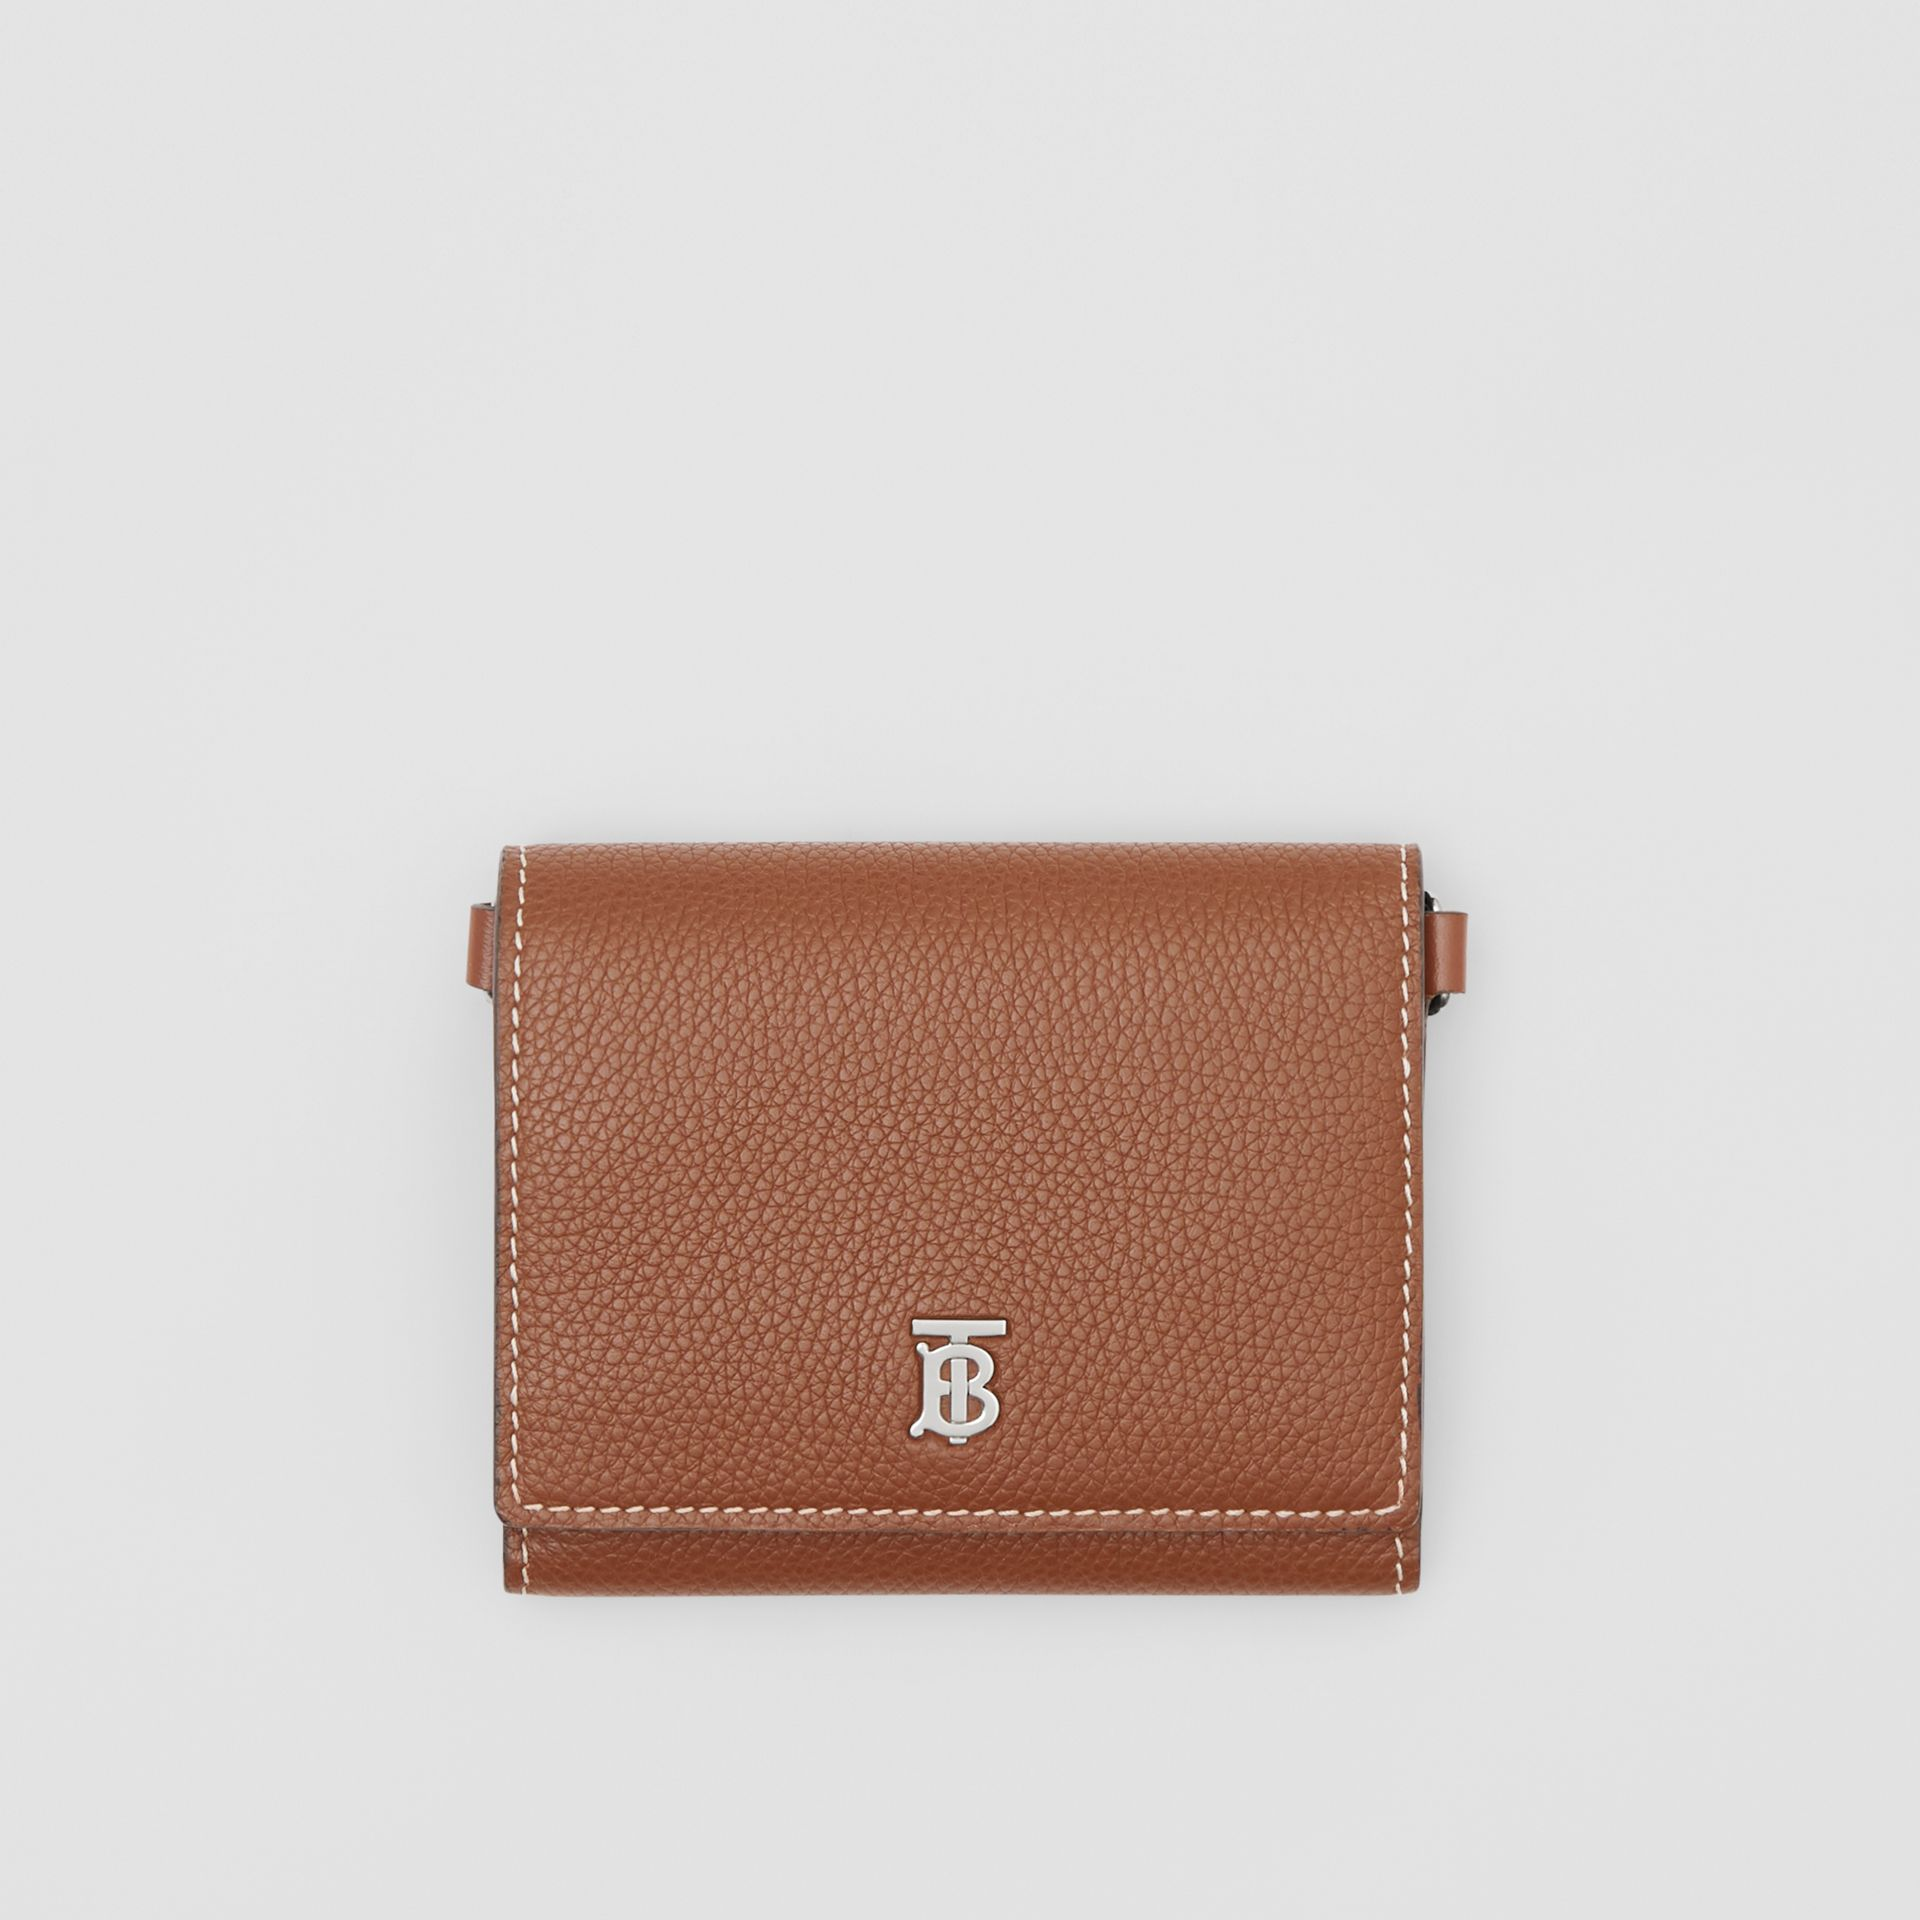 Small Grainy Leather Wallet with Detachable Strap in Tan | Burberry United Kingdom - gallery image 10